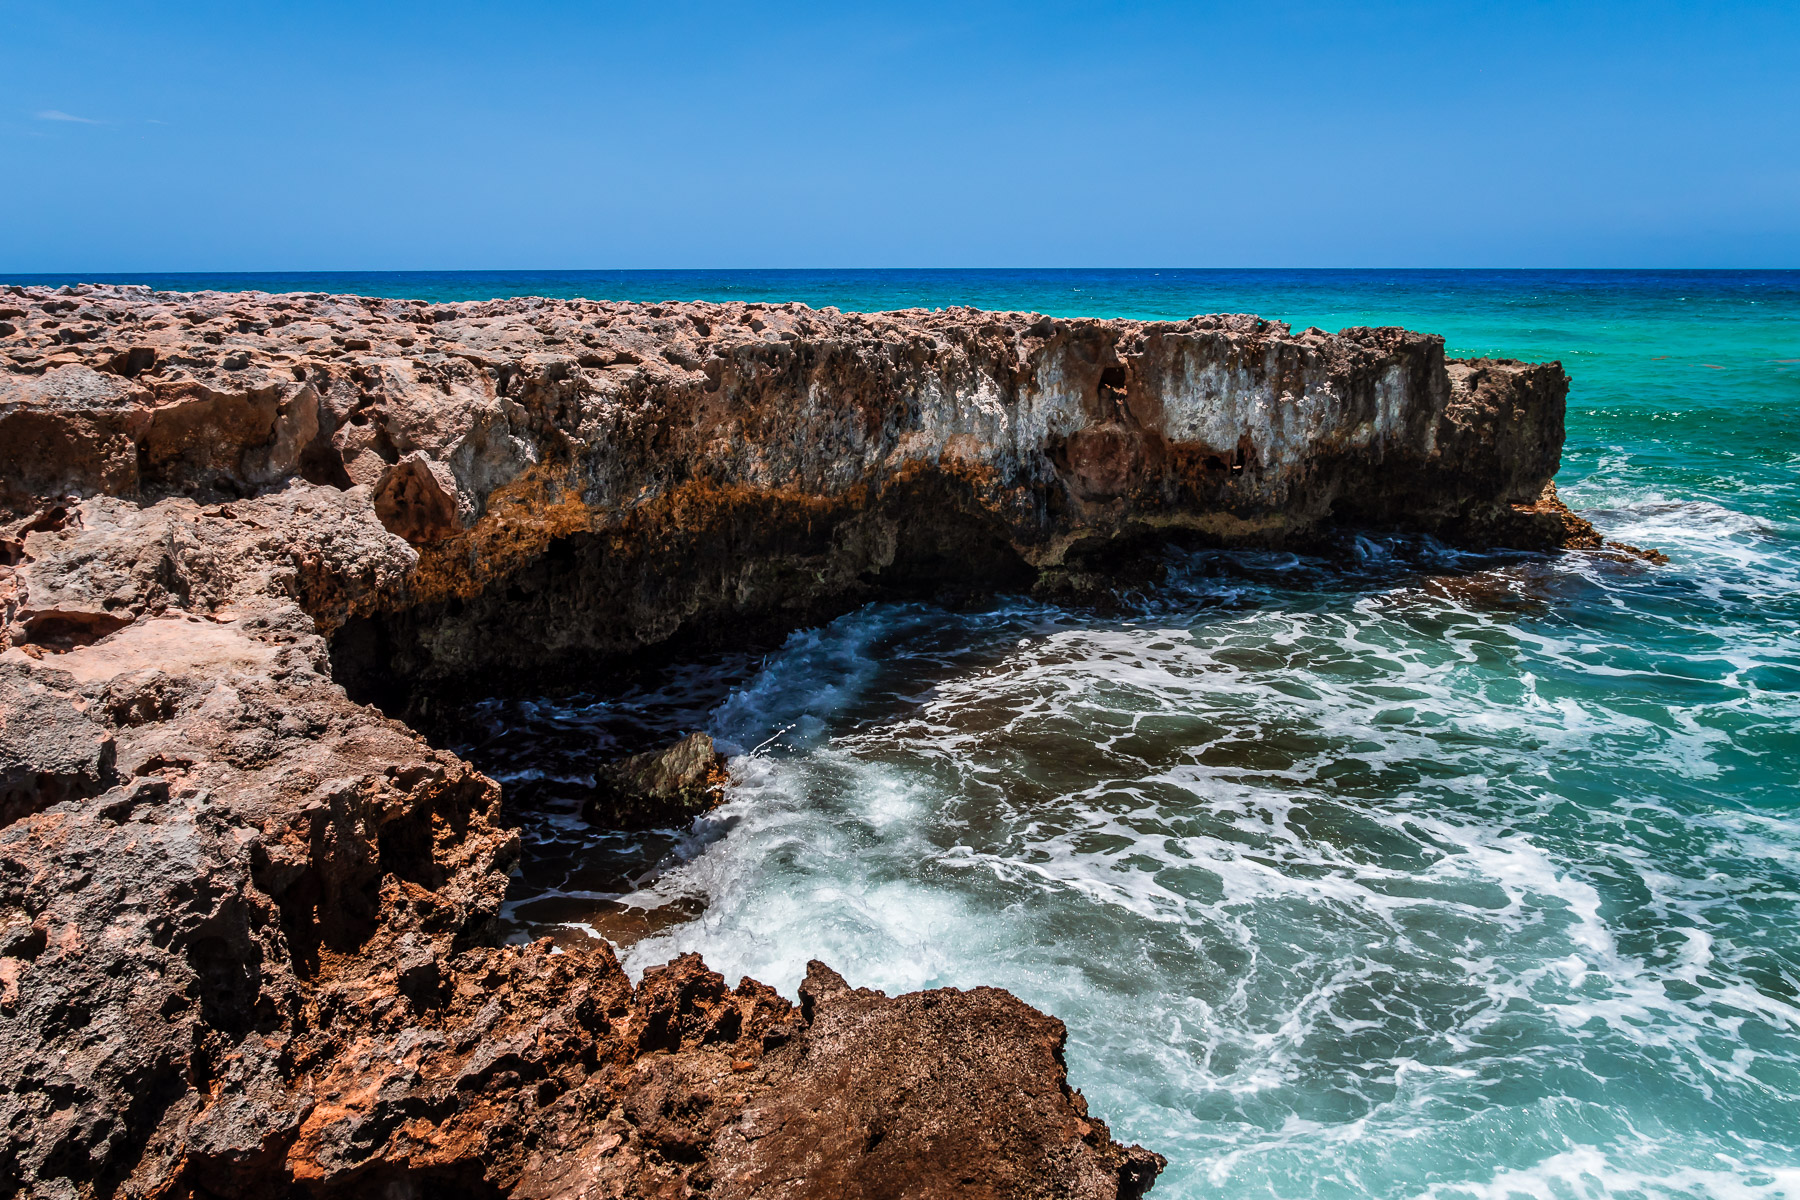 Rocks reach into the sea at El Mirador, Cozumel, Mexico.